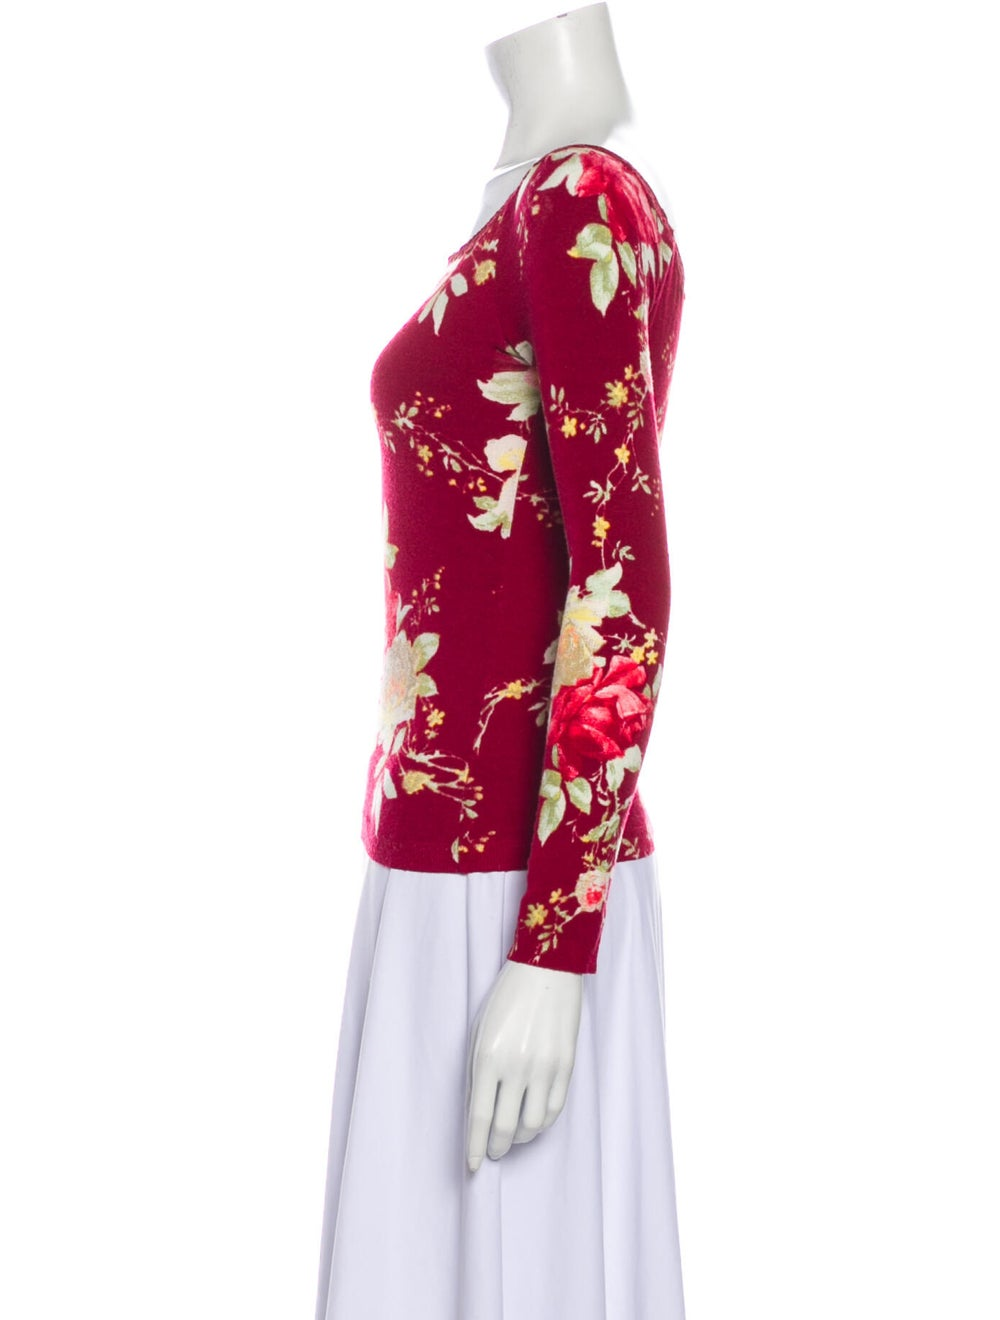 Blumarine Floral Print Scoop Neck Top Red - image 2